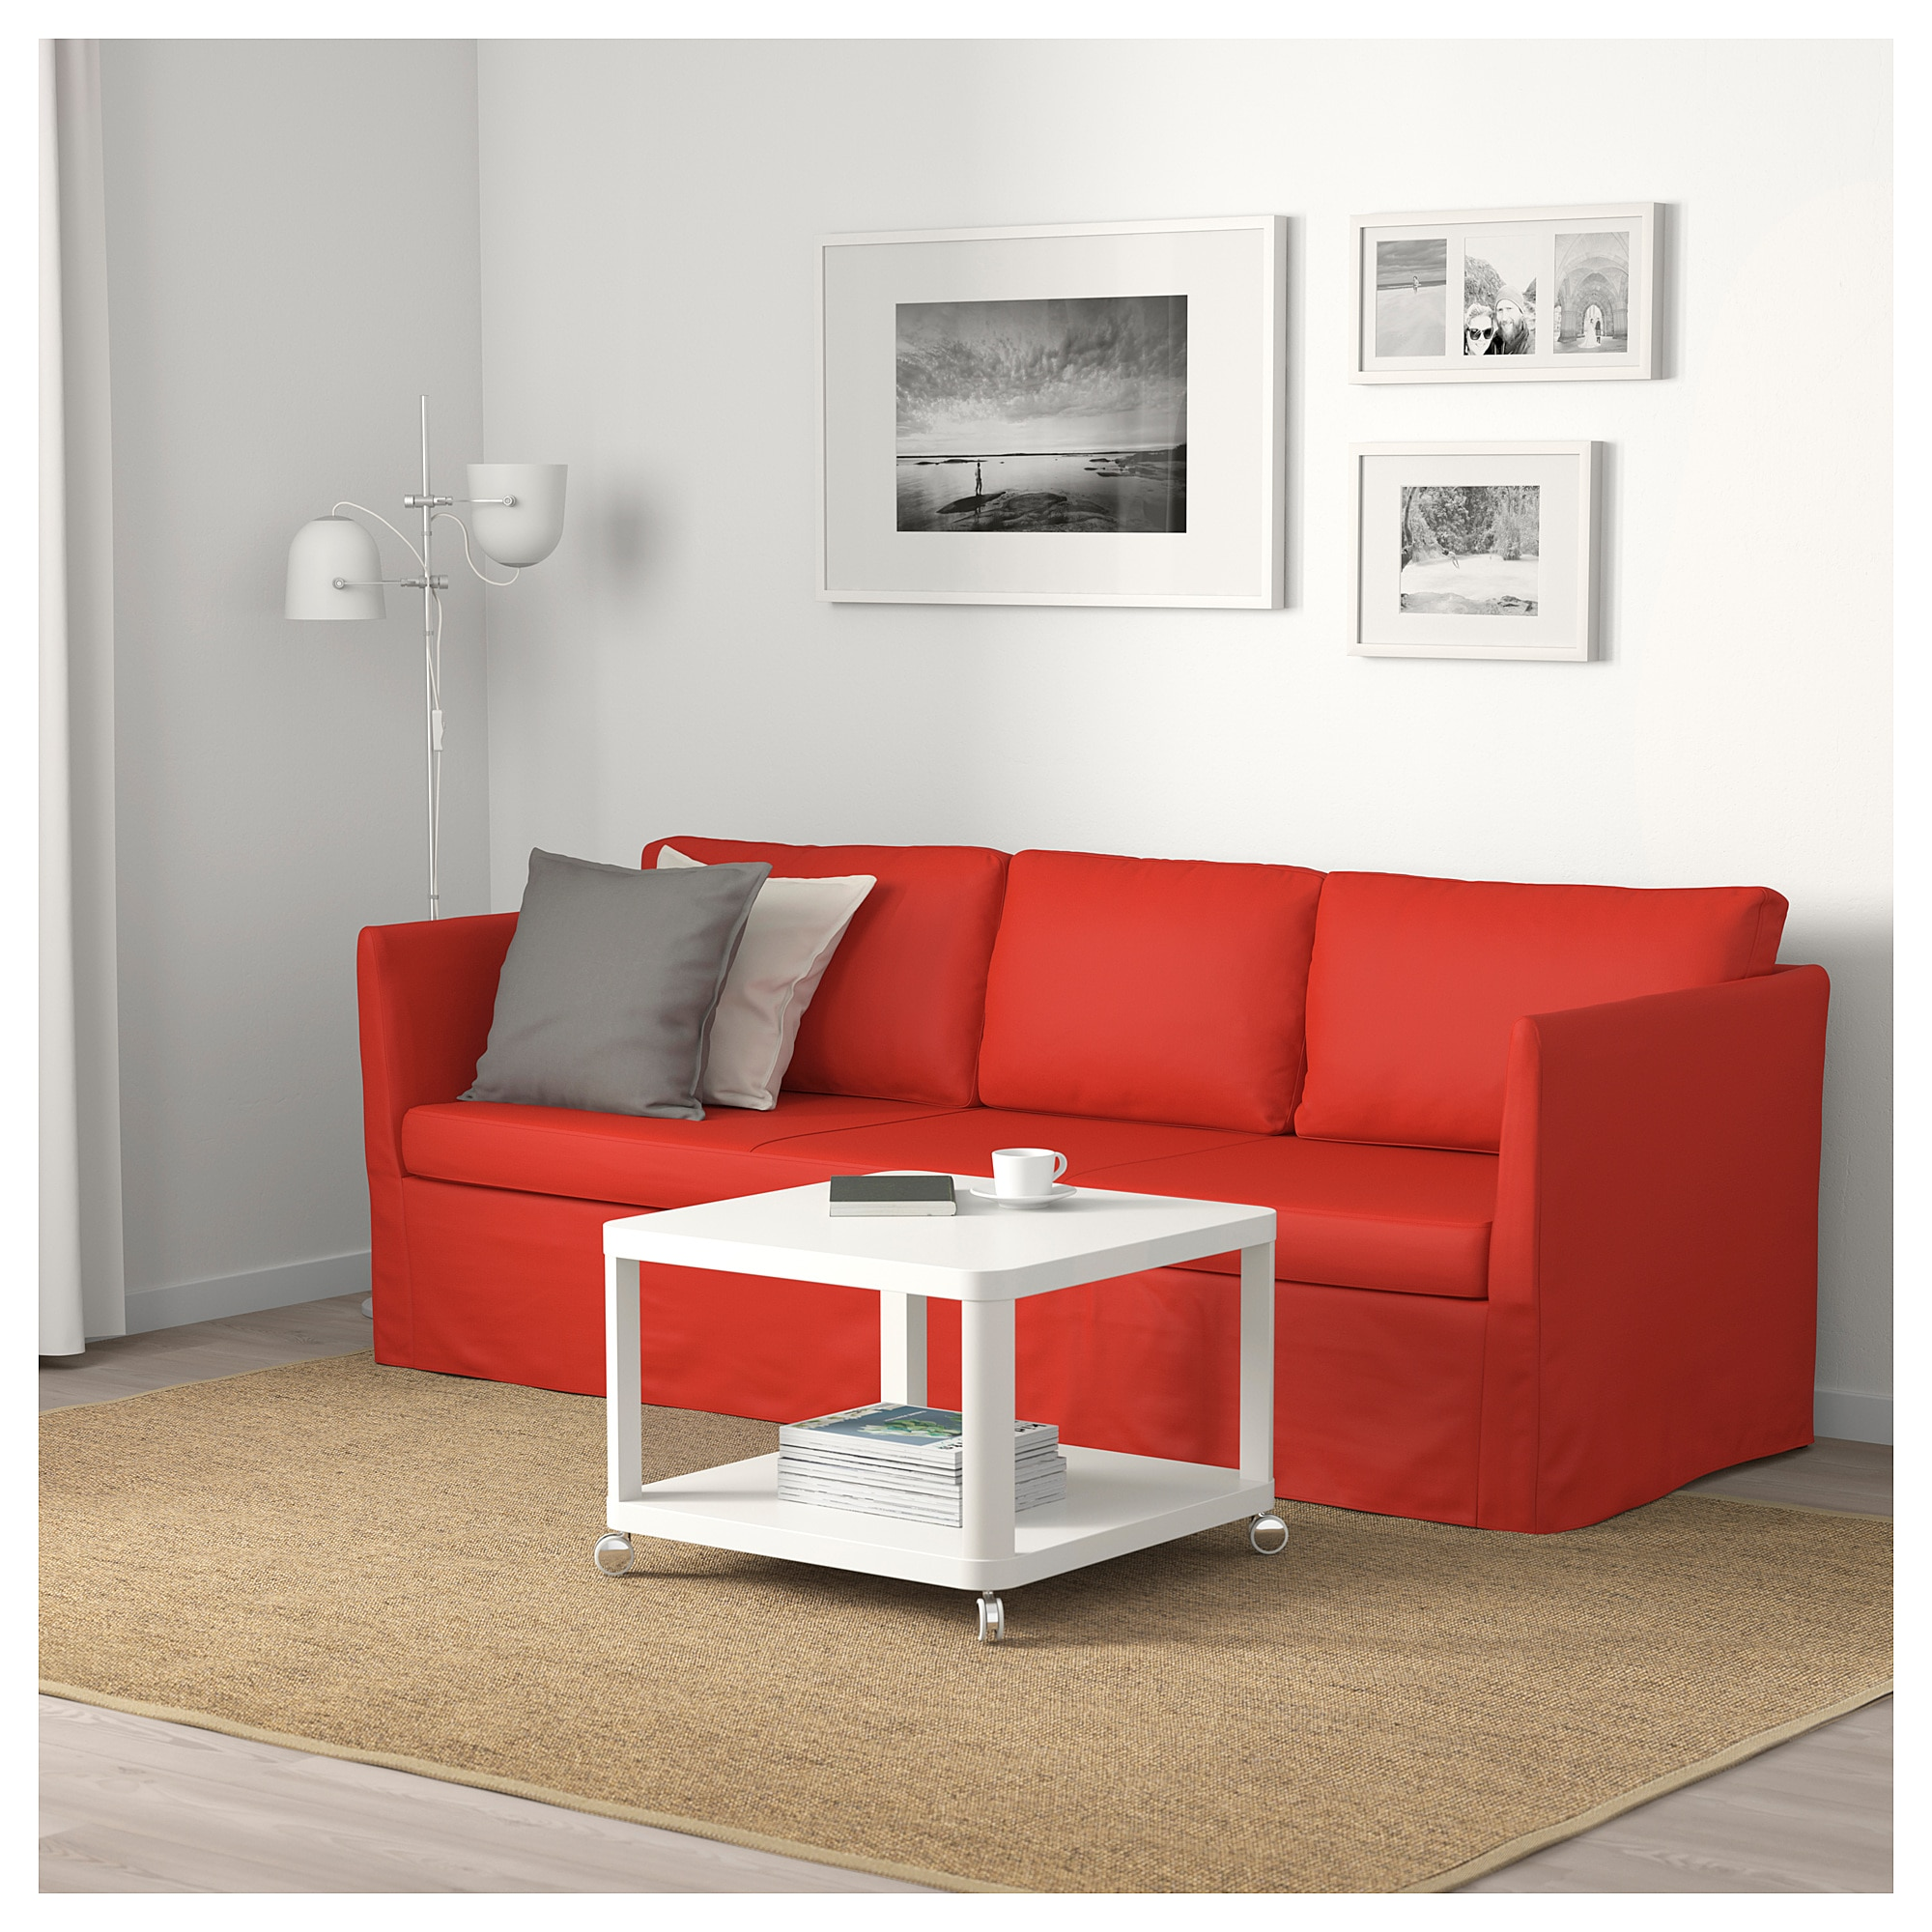 BR…THULT Sofa Vissle red orange IKEA